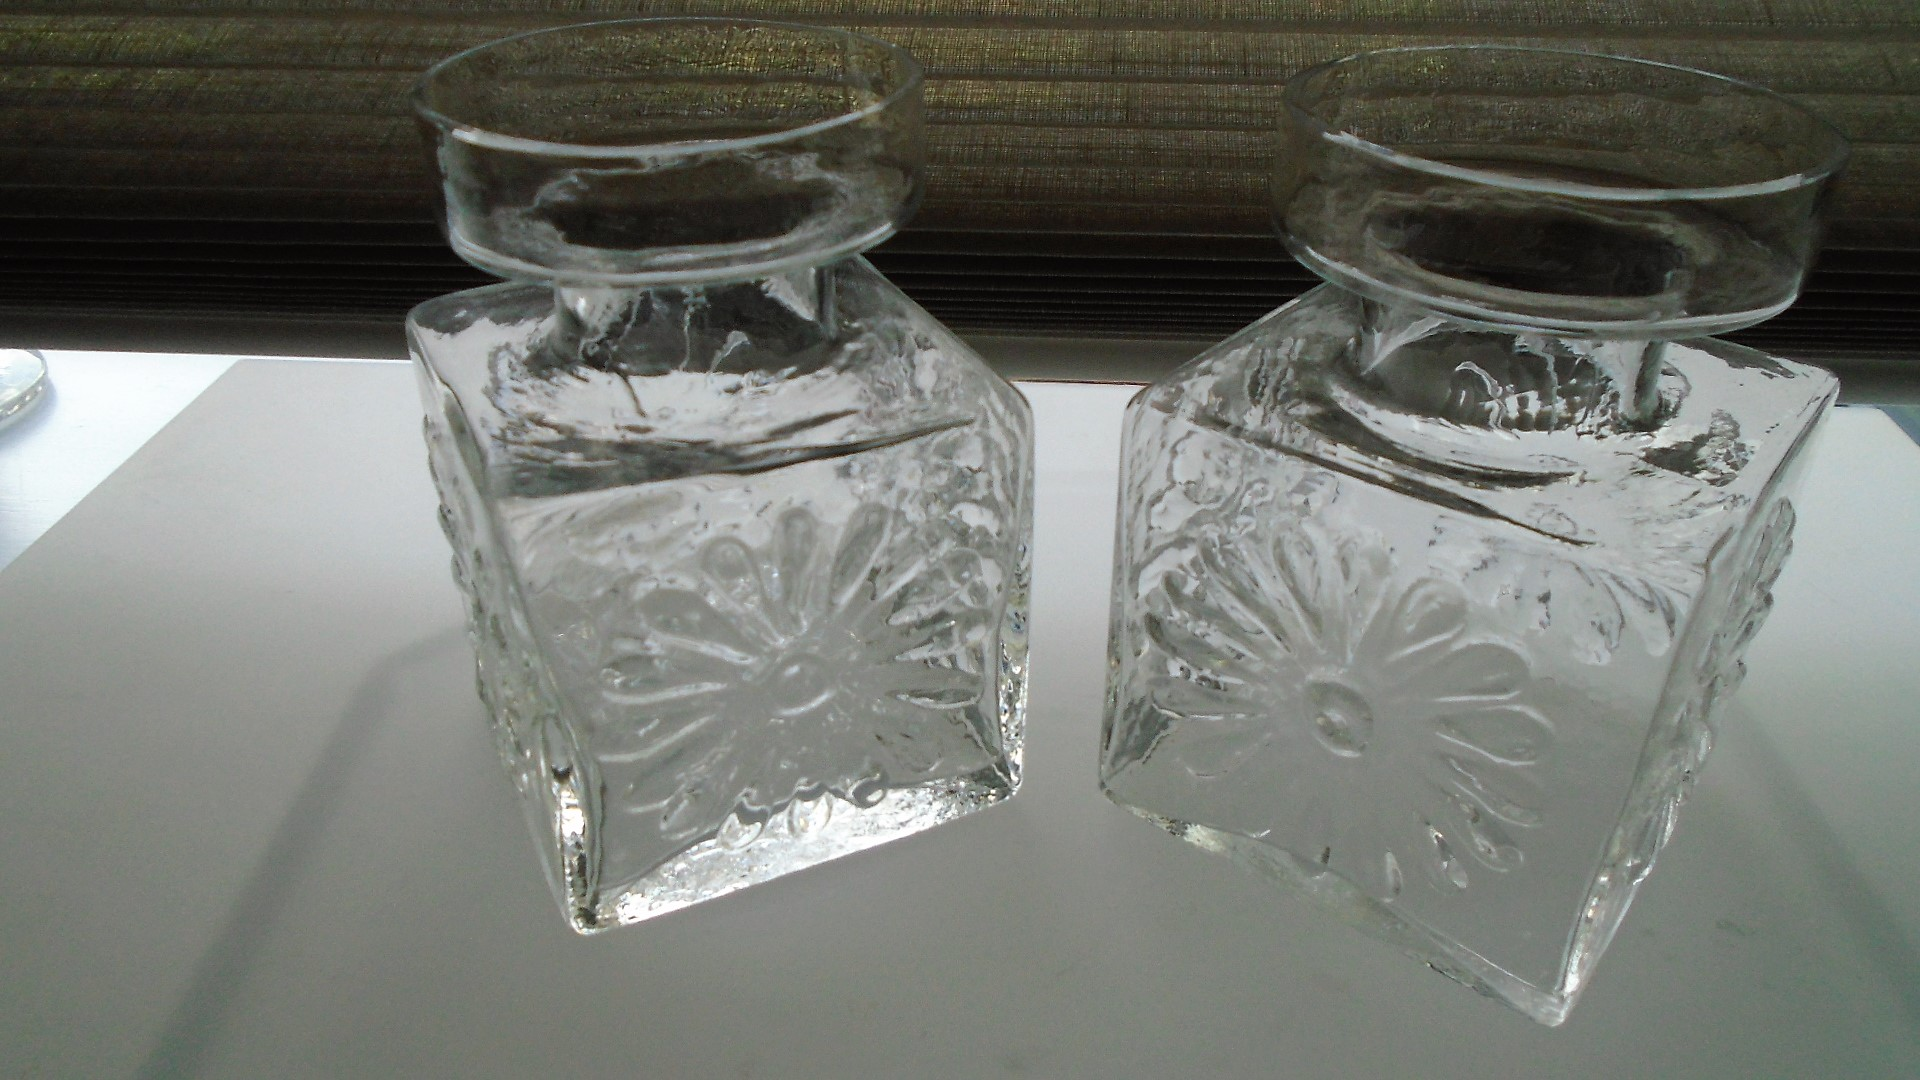 Pair of iconic Frank Thrower 60s vintage Dartington Candle Holders Pattern FT60. in clear with the raised daisy pattern